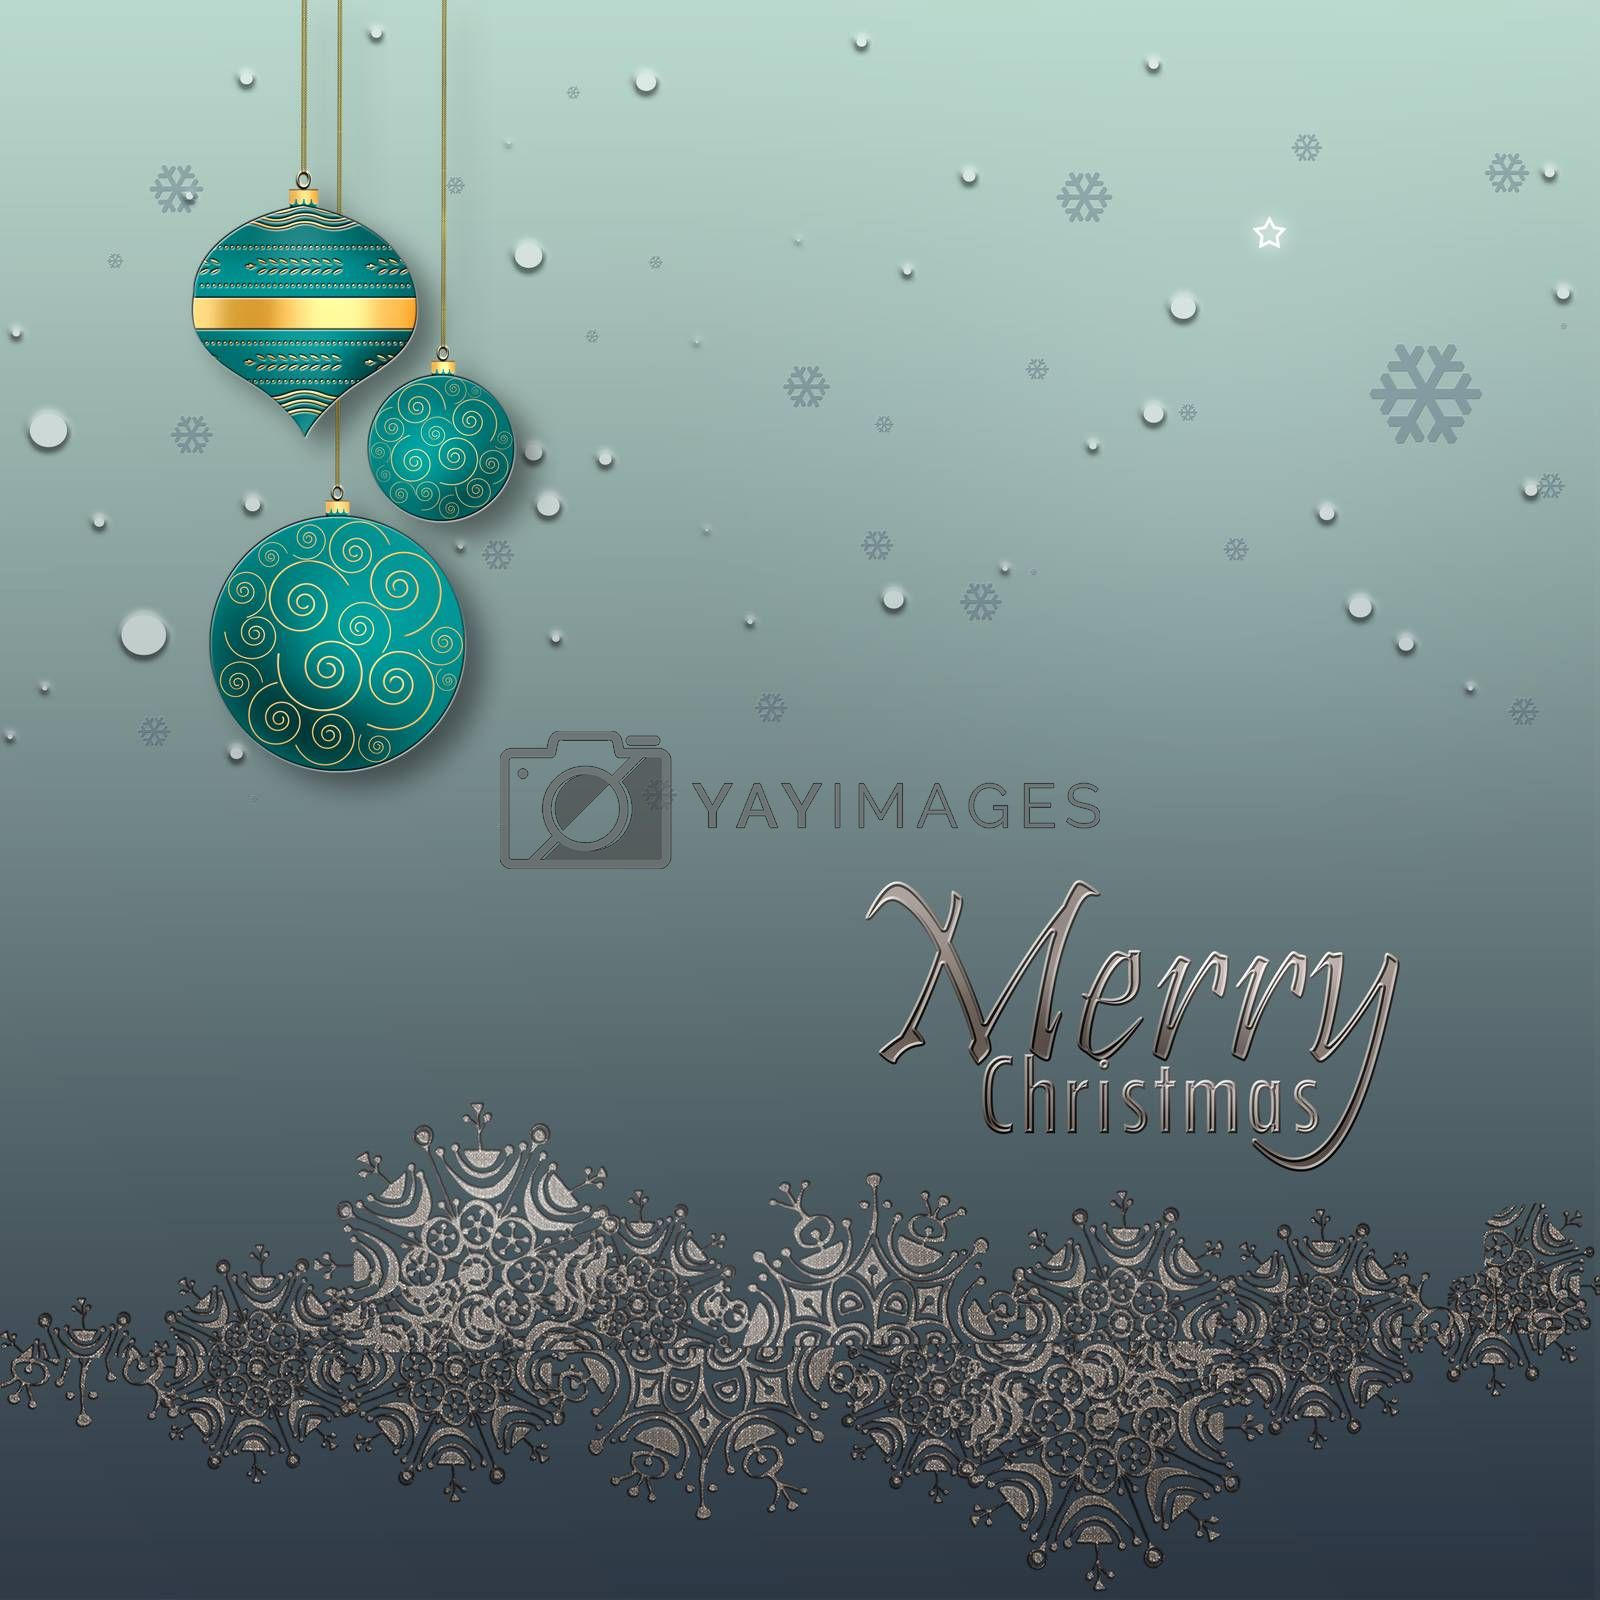 Christmas and Happy New Year Background with silver border of snowflakes, blue turquoise balls on pastel green metallic background. Text Merry Christmas. 3D illustration